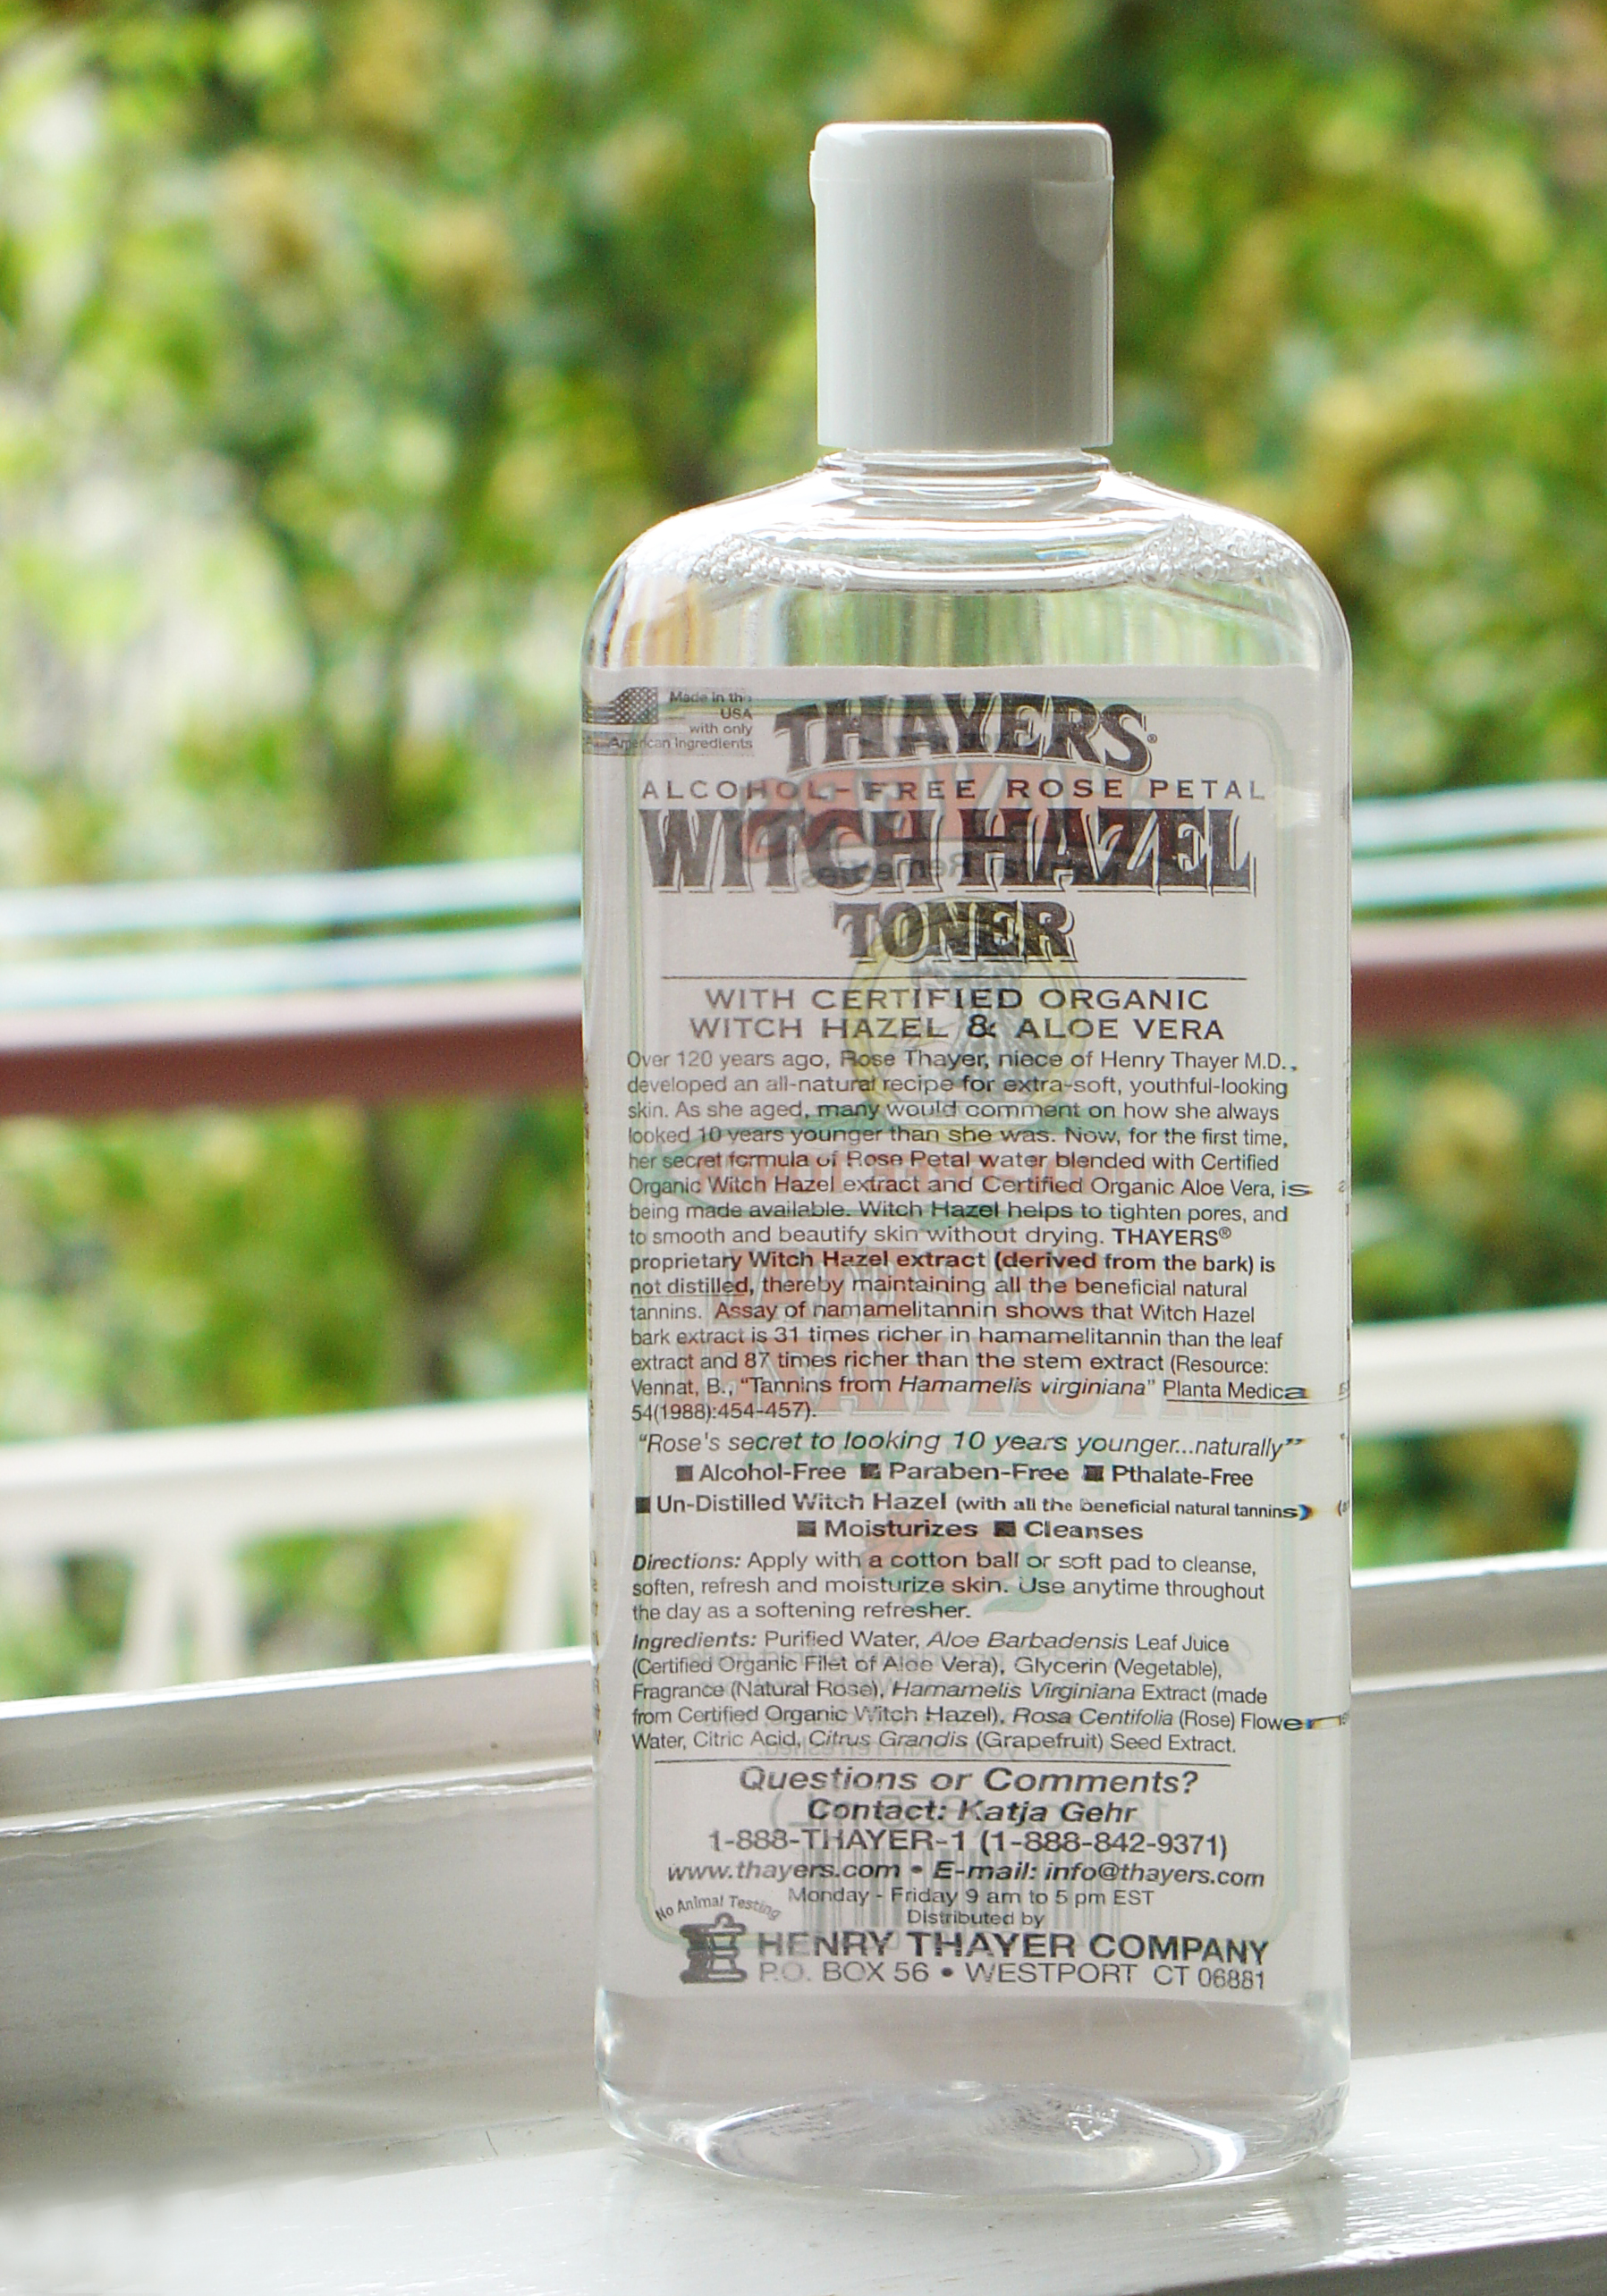 thayers Thayers Rose Petal Witch Hazel Toner